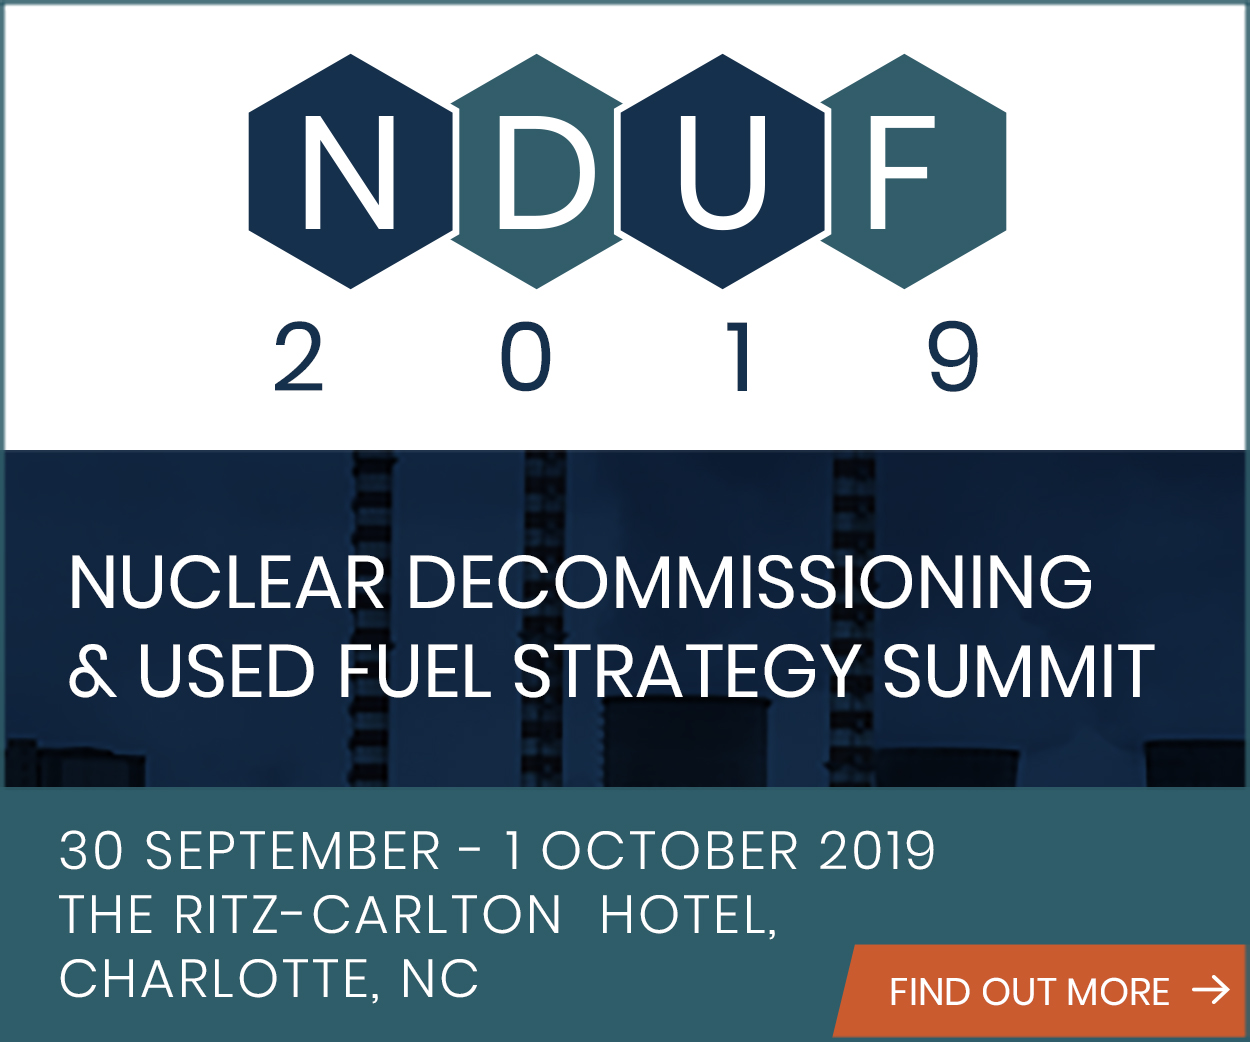 Nuclear Decommissioning & Used Fuel Strategy Summit 2019